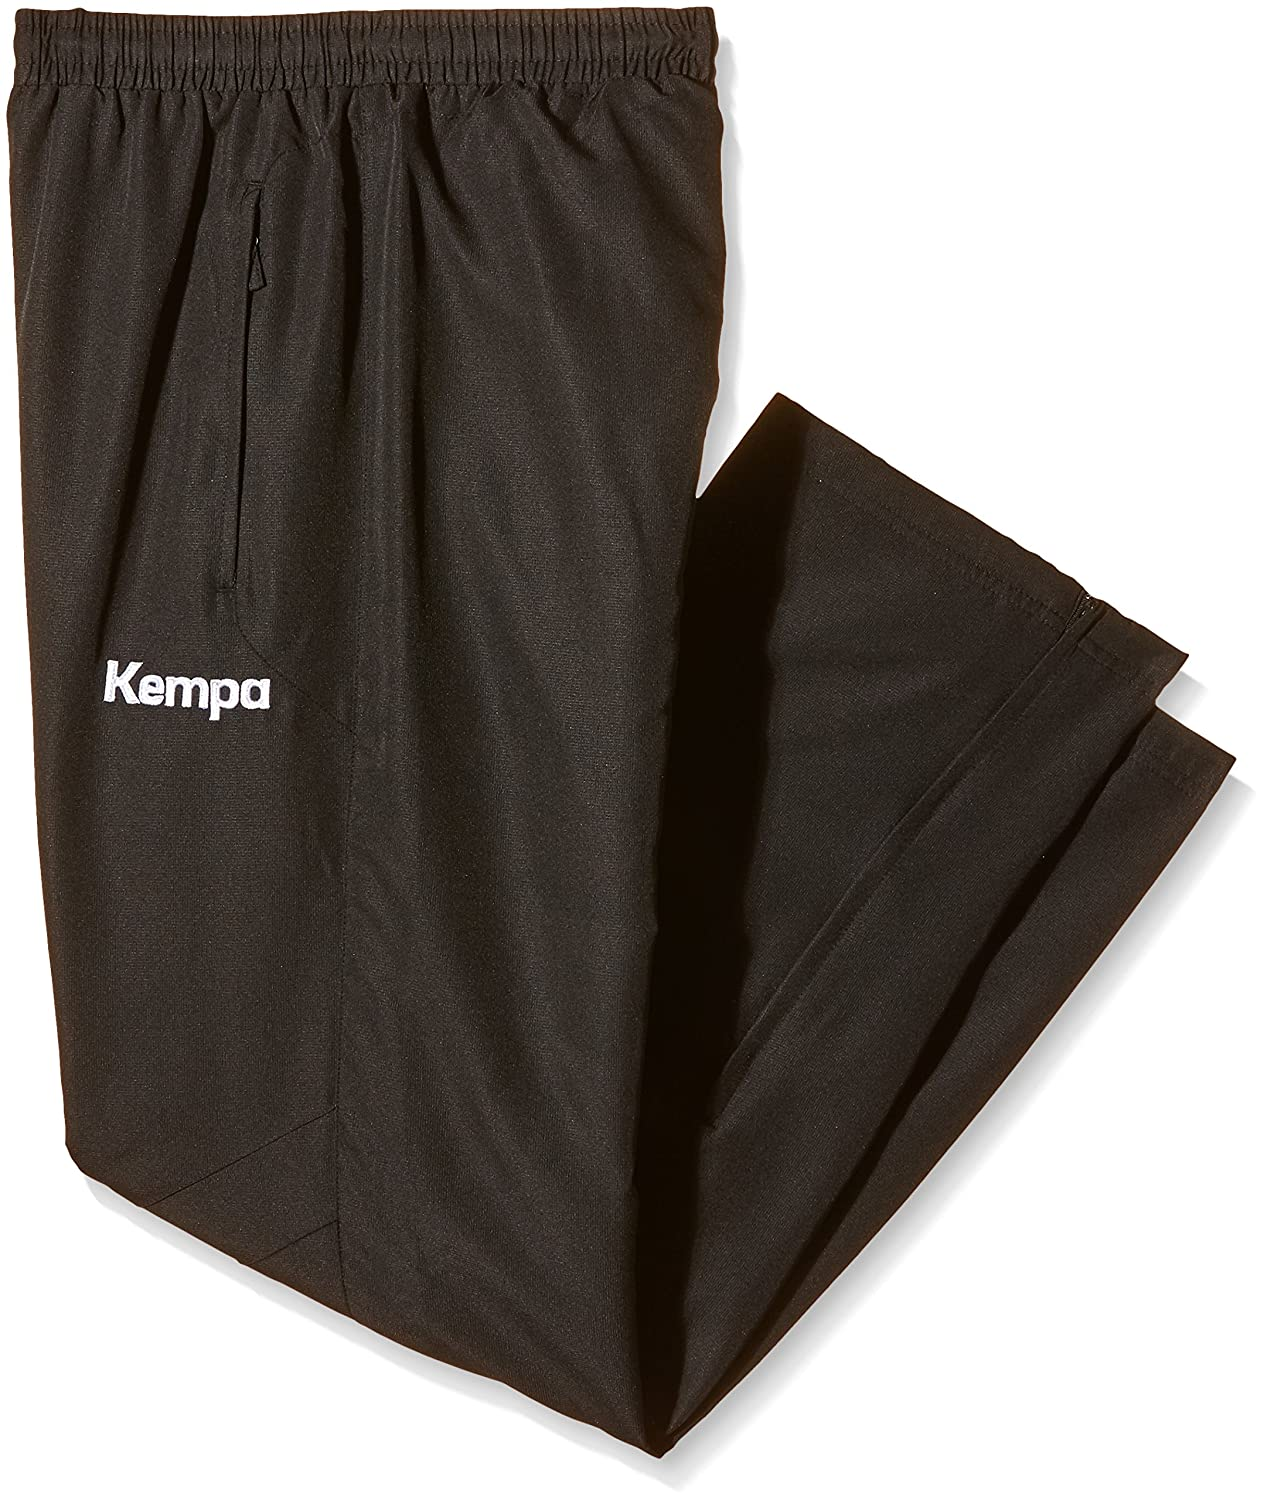 Kempa Damen Hose Tribute Web Women